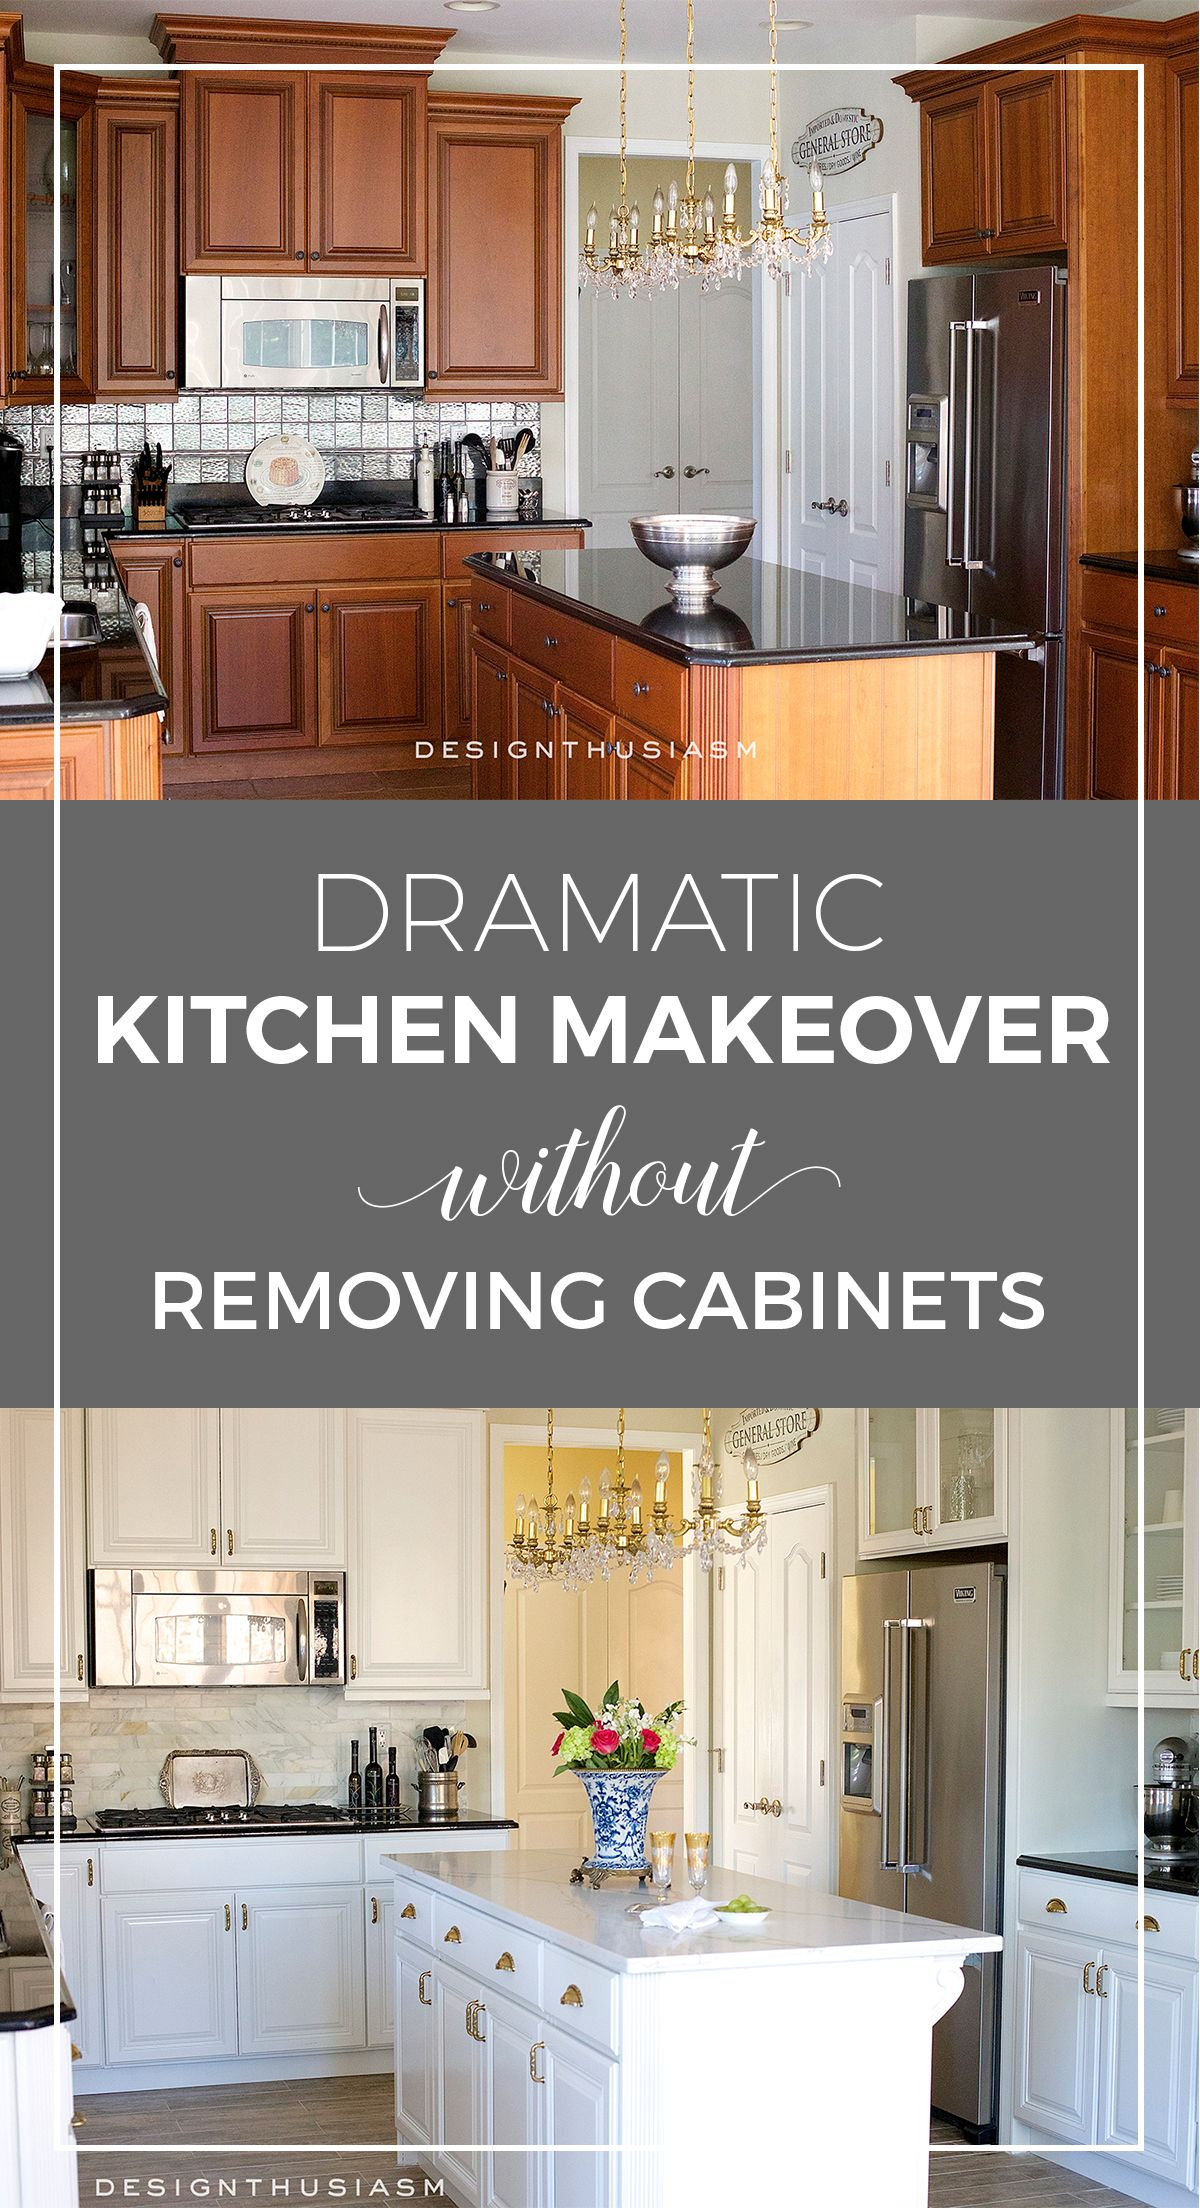 New Kitchen Dramatic Kitchen Renovation Without Removing Cabinets Budget Kitchen Remodel Refacing Kitchen Cabinets Kitchen Diy Makeover